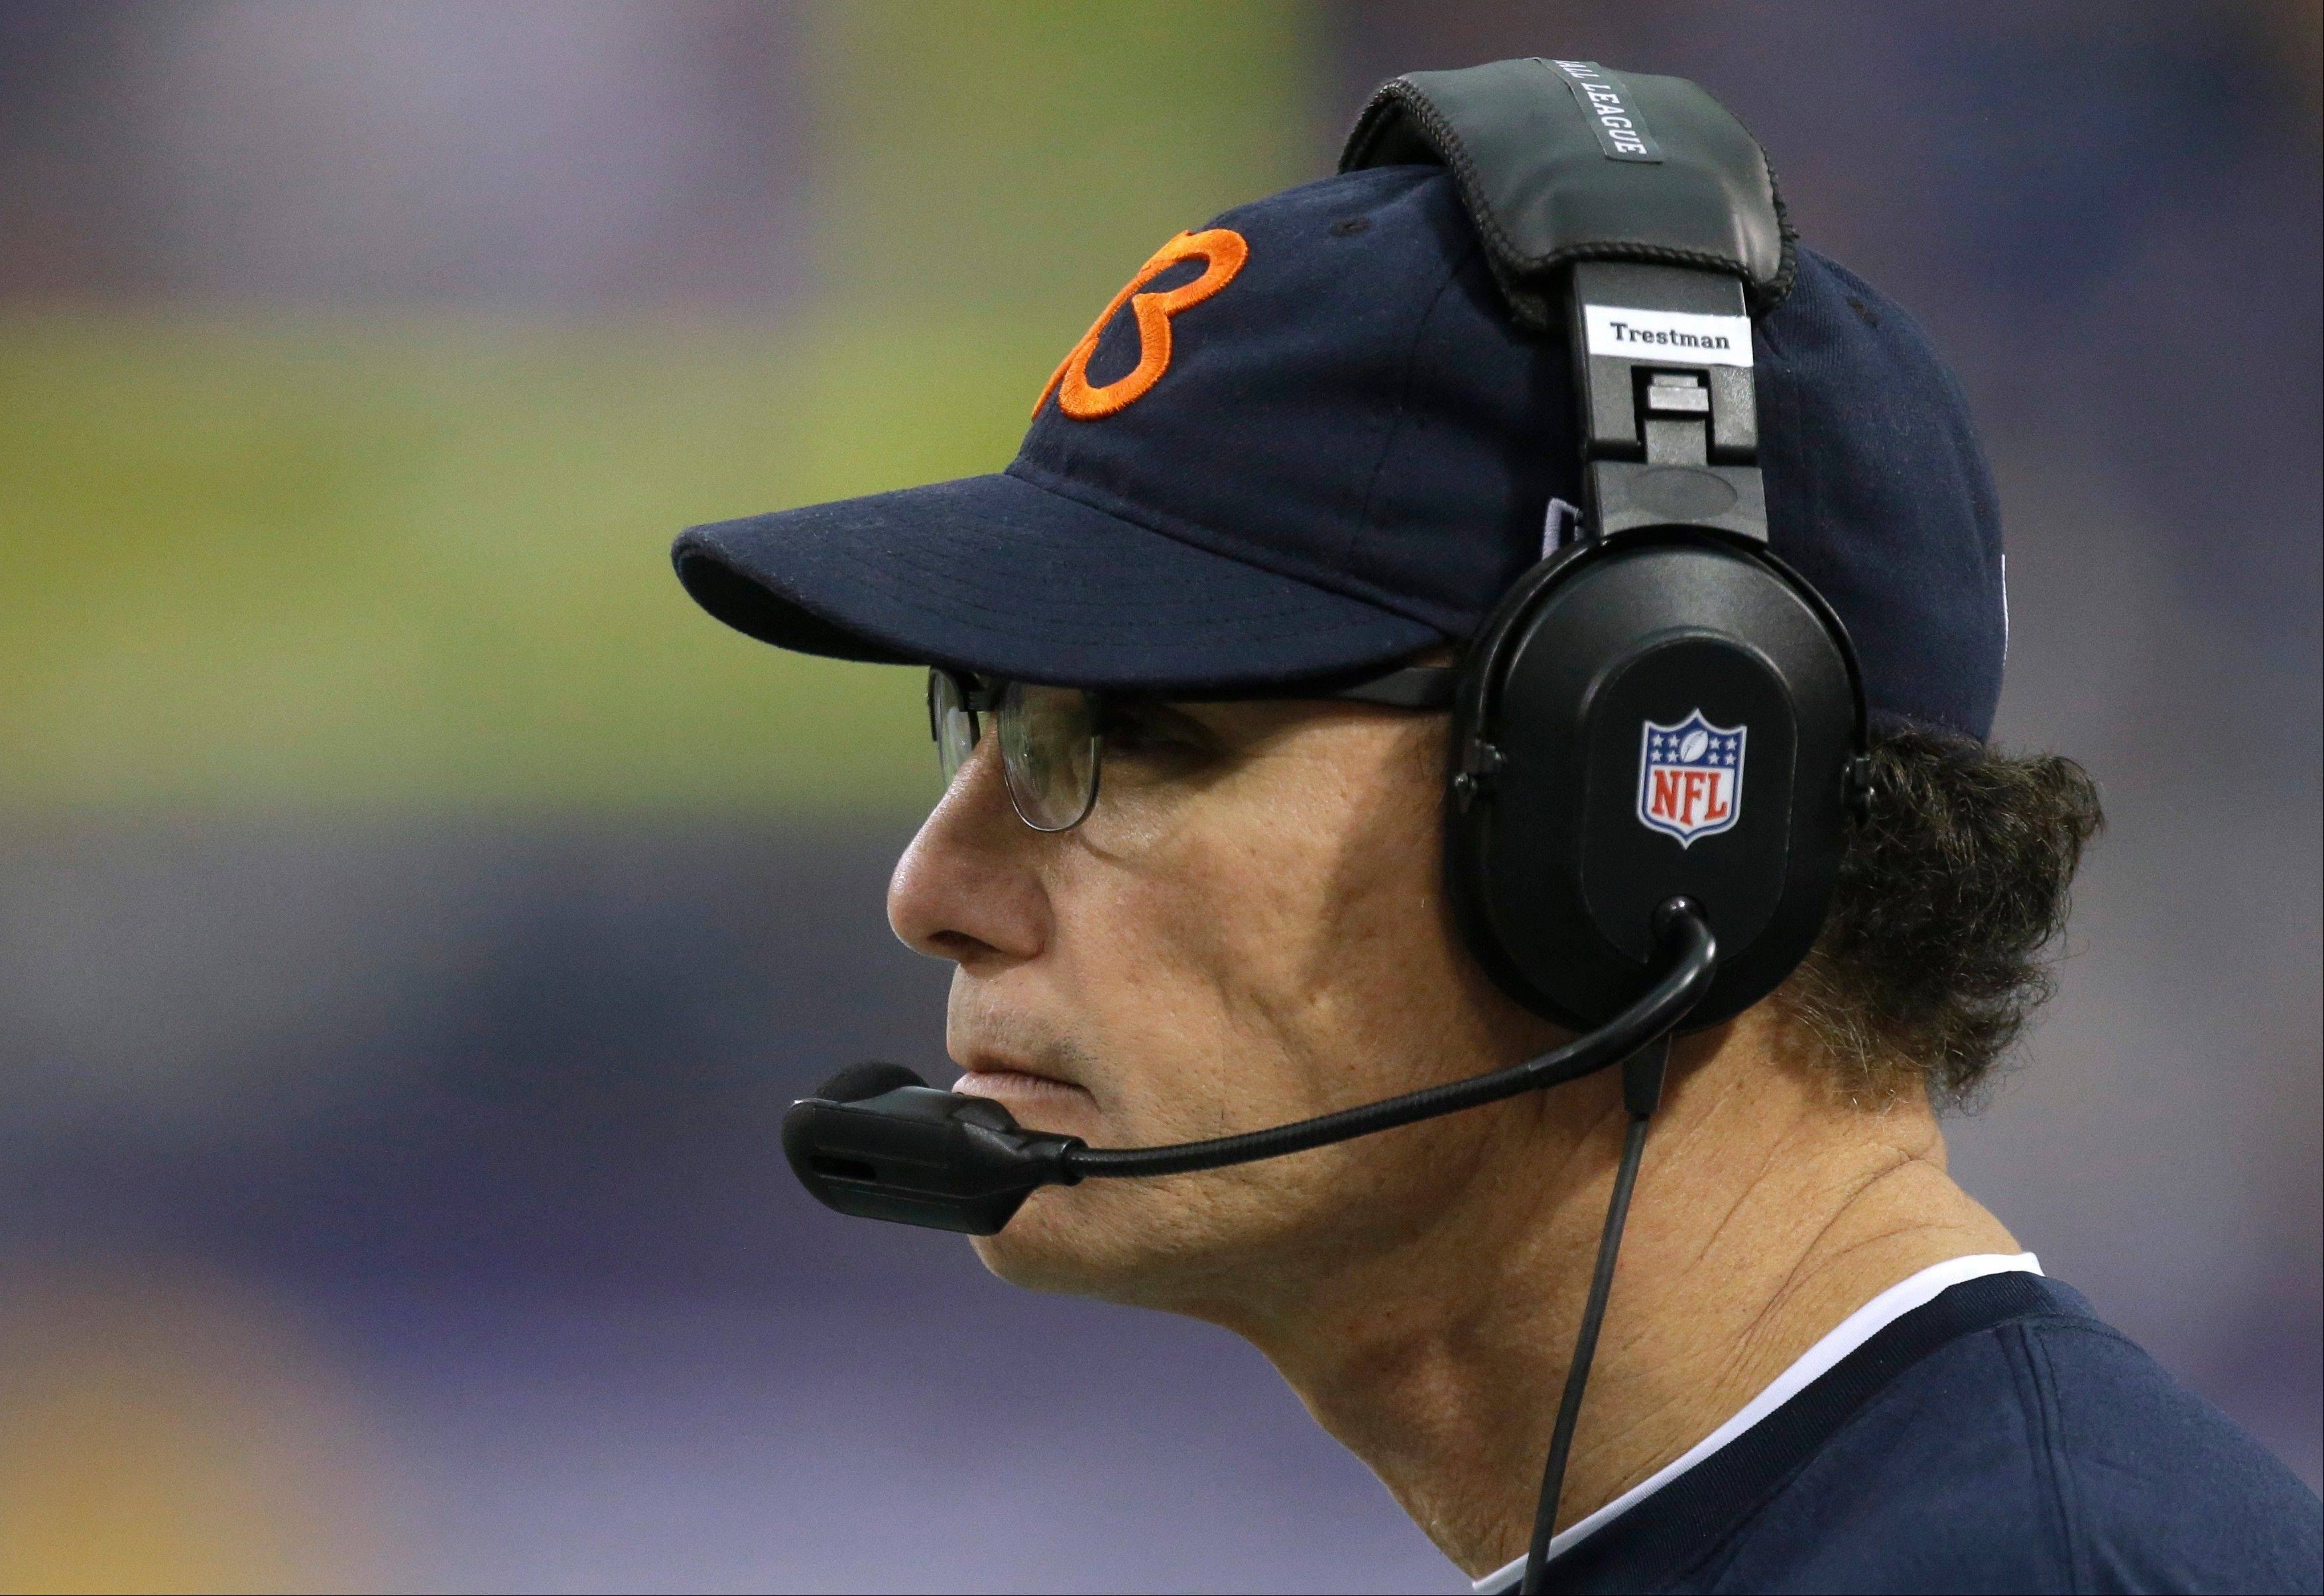 Things have gotten so bad for Bears coach Marc Trestman that he can't make the correct decision even when the decision is correct.